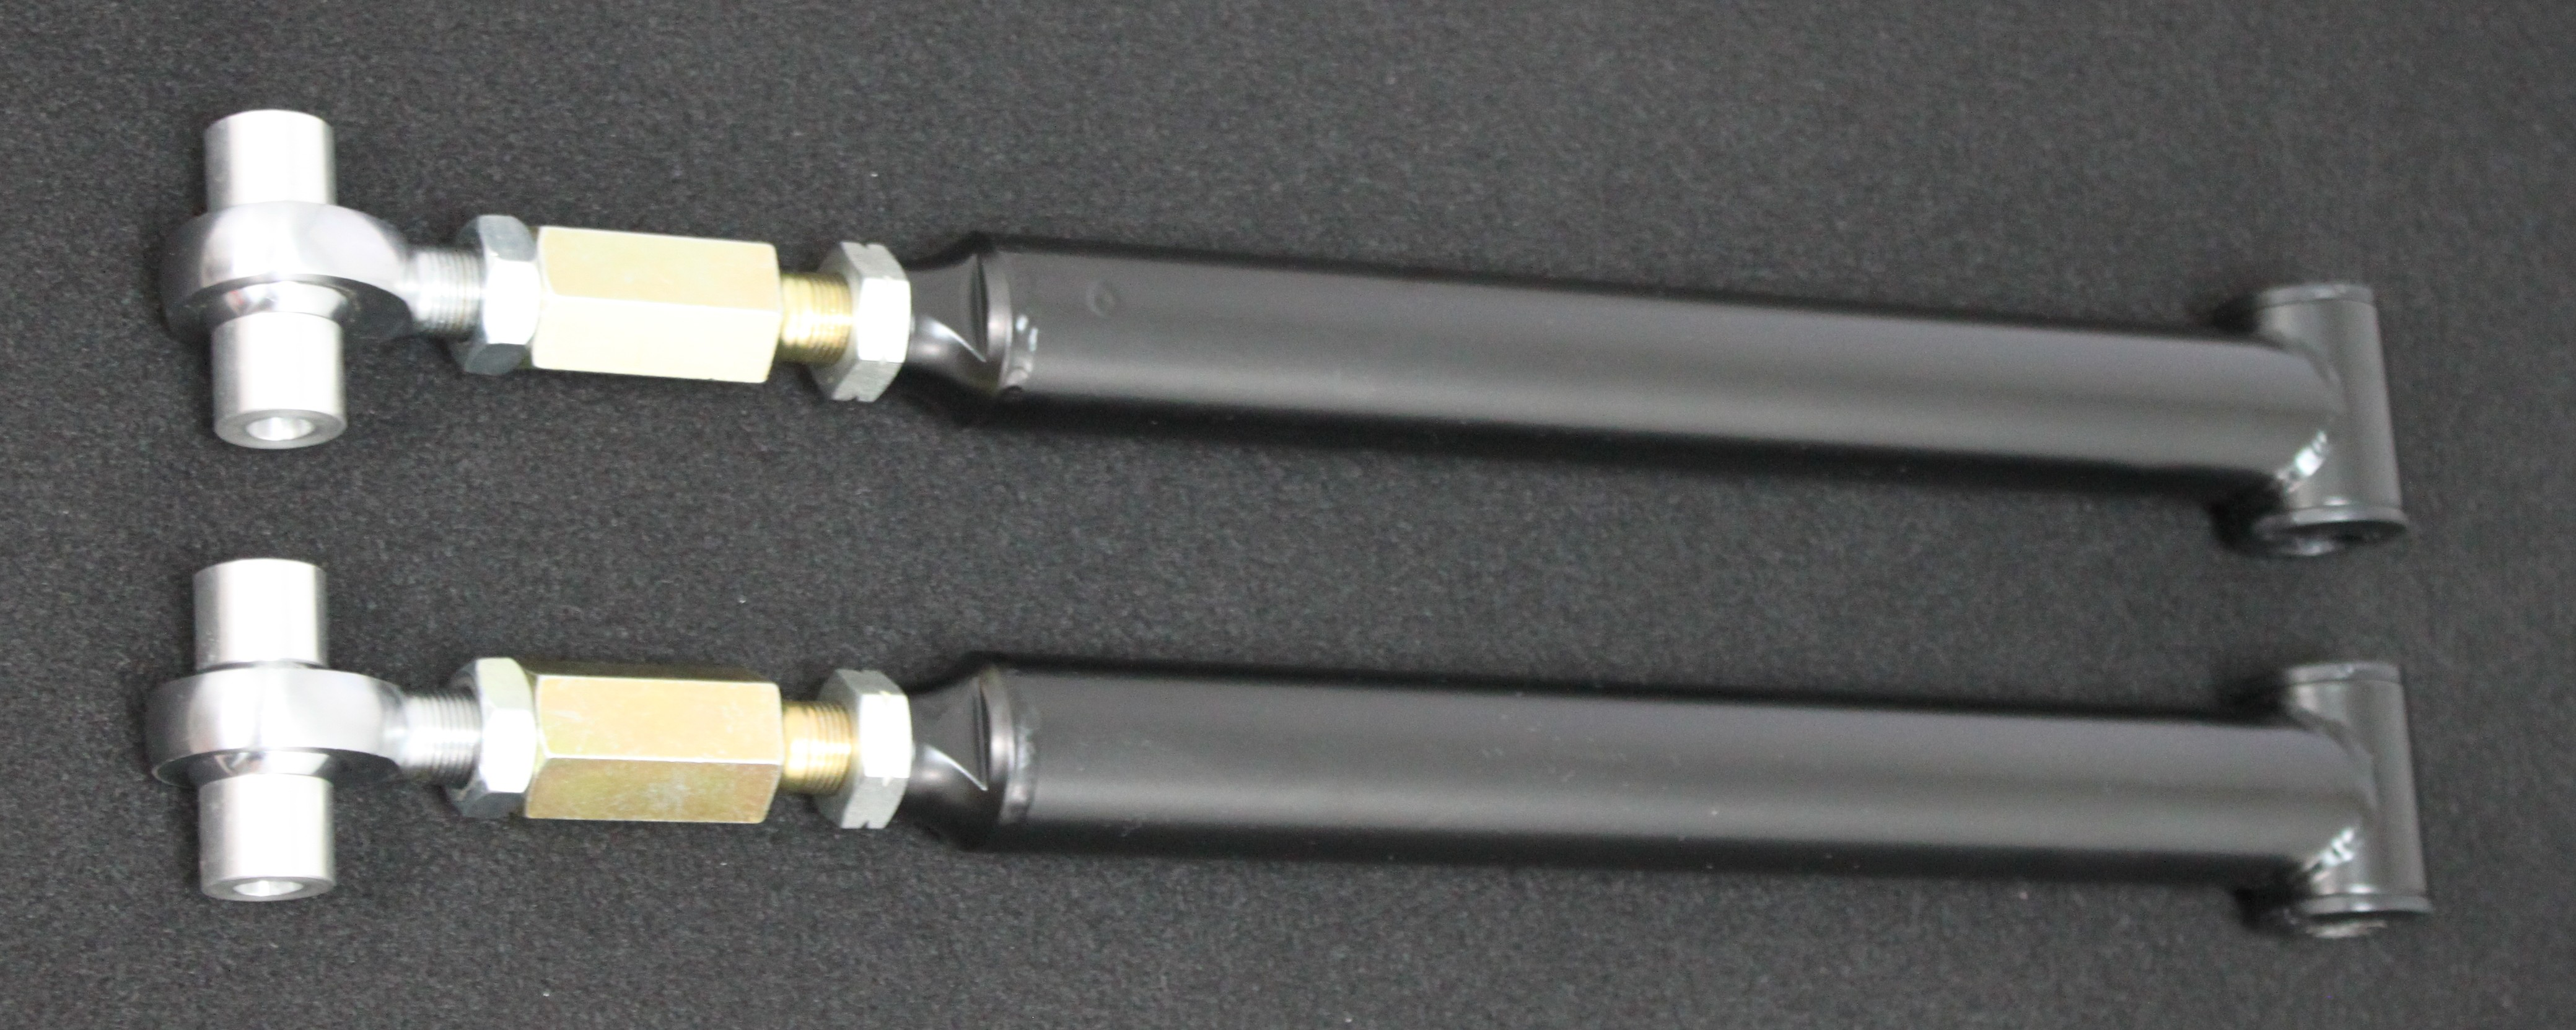 Lower Control Arms Double Adjustable w/ Delrin Bushiings